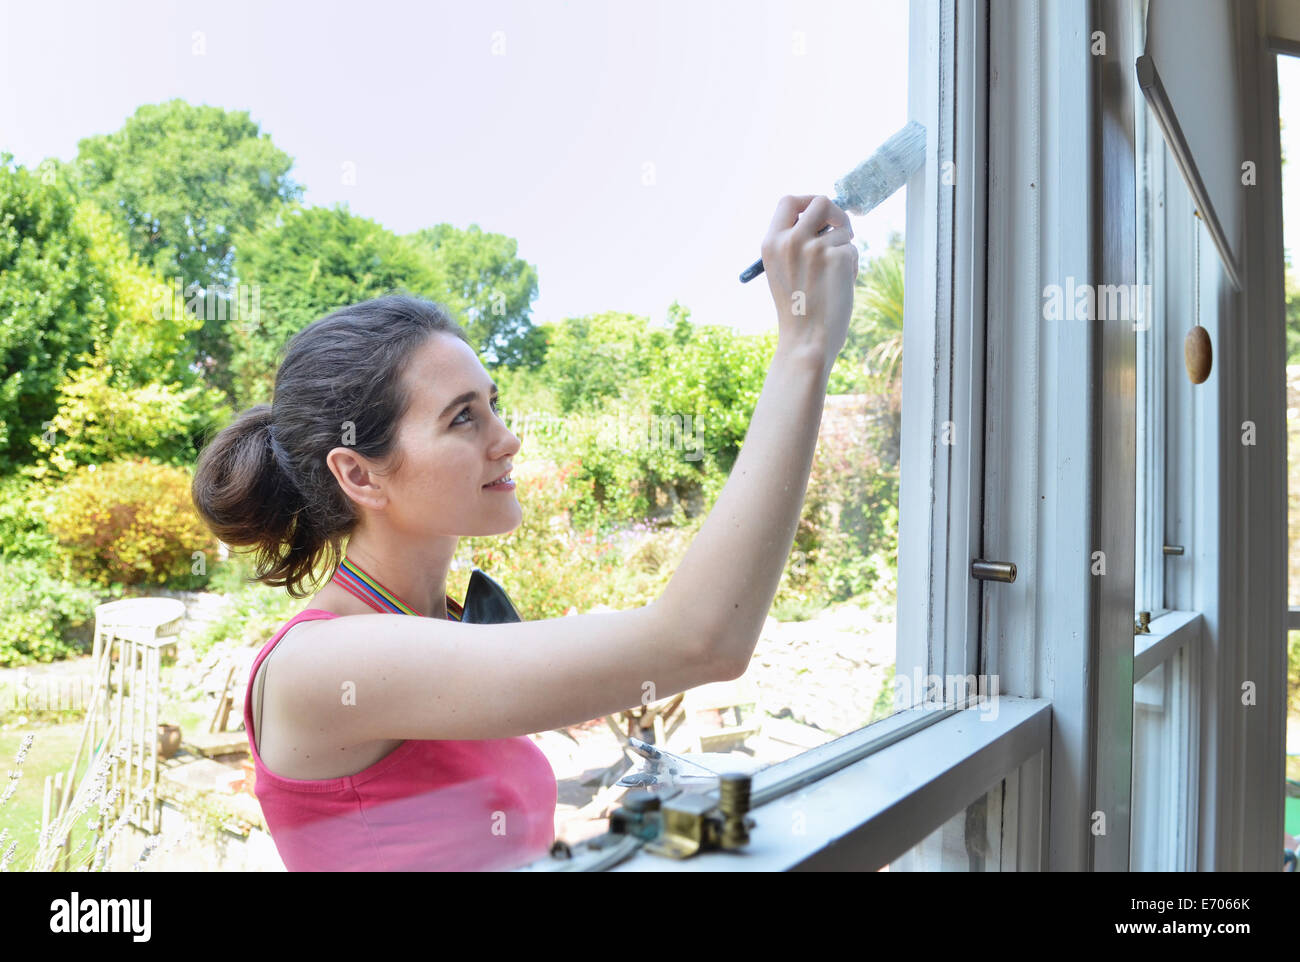 Young woman painting house window - Stock Image